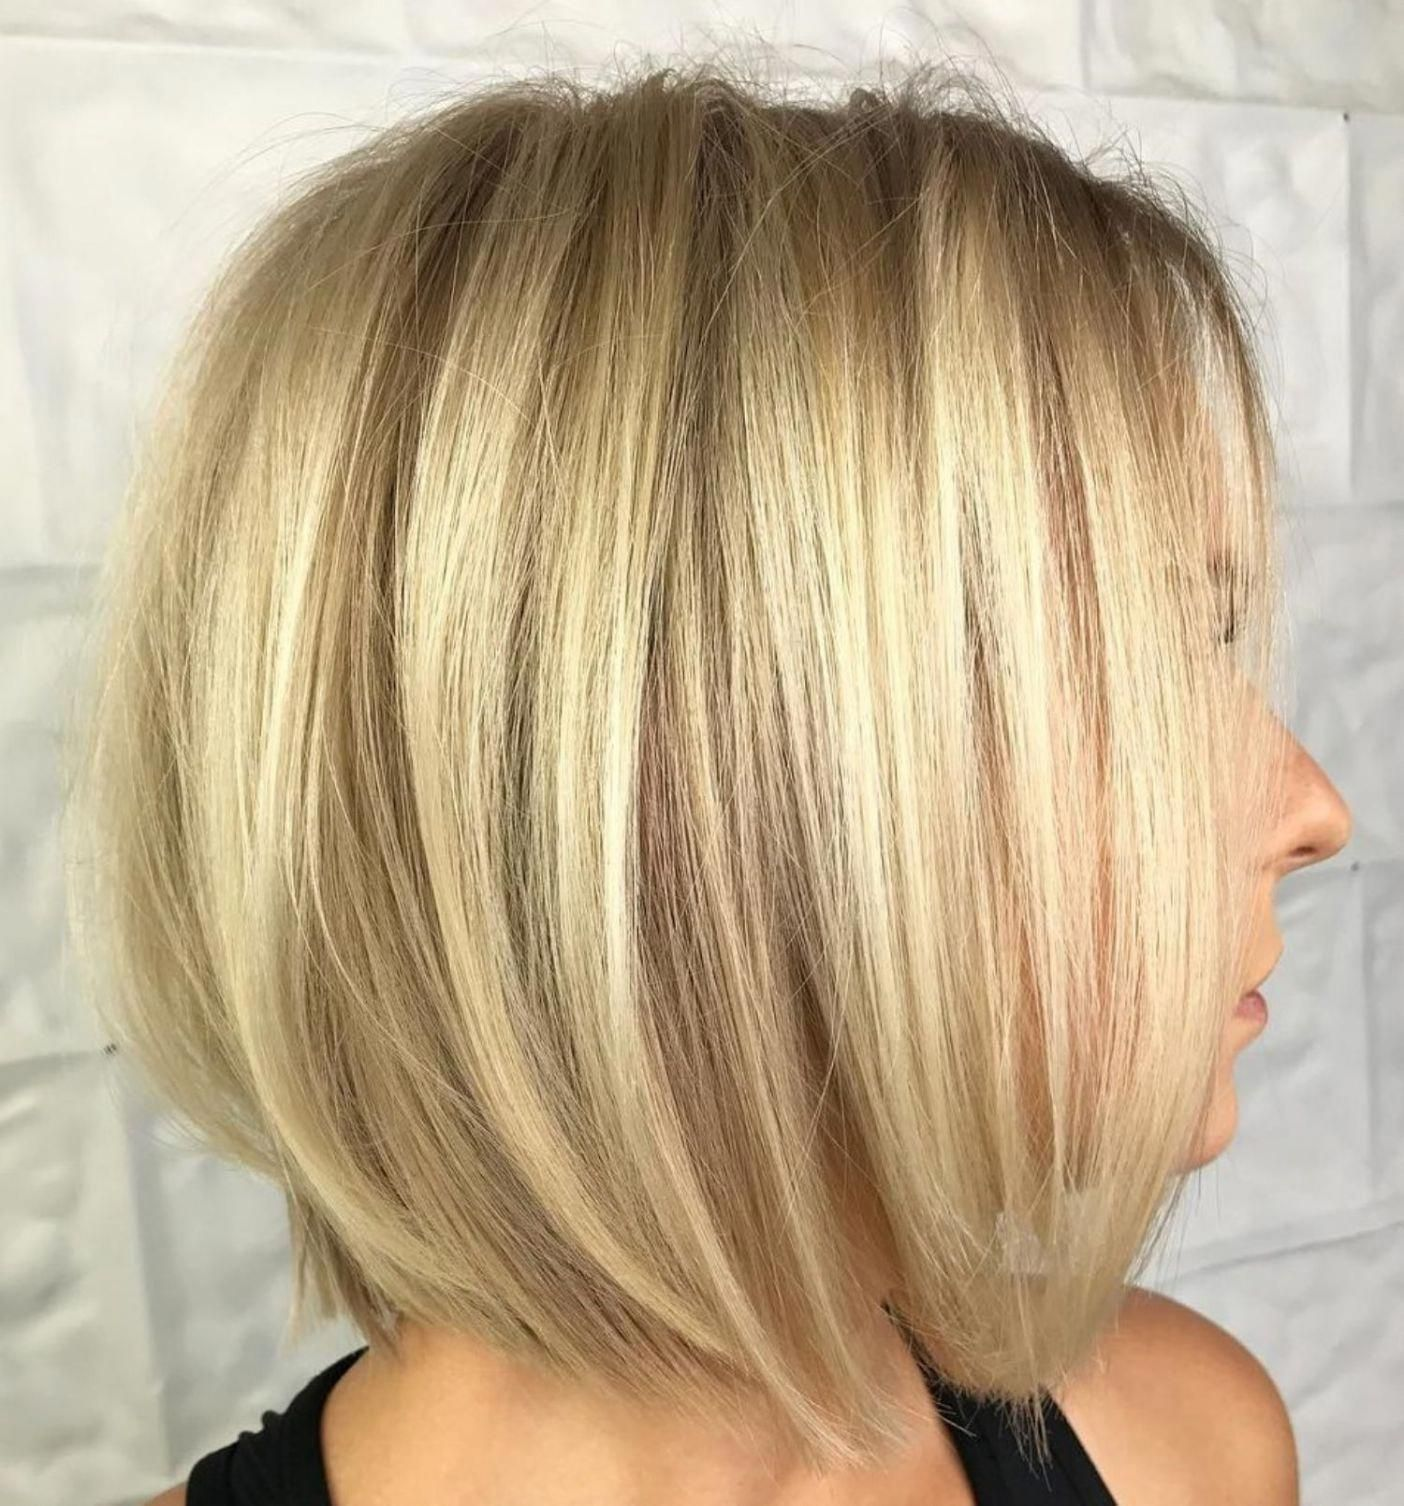 Pin On Short Bob Hairstyles Trends